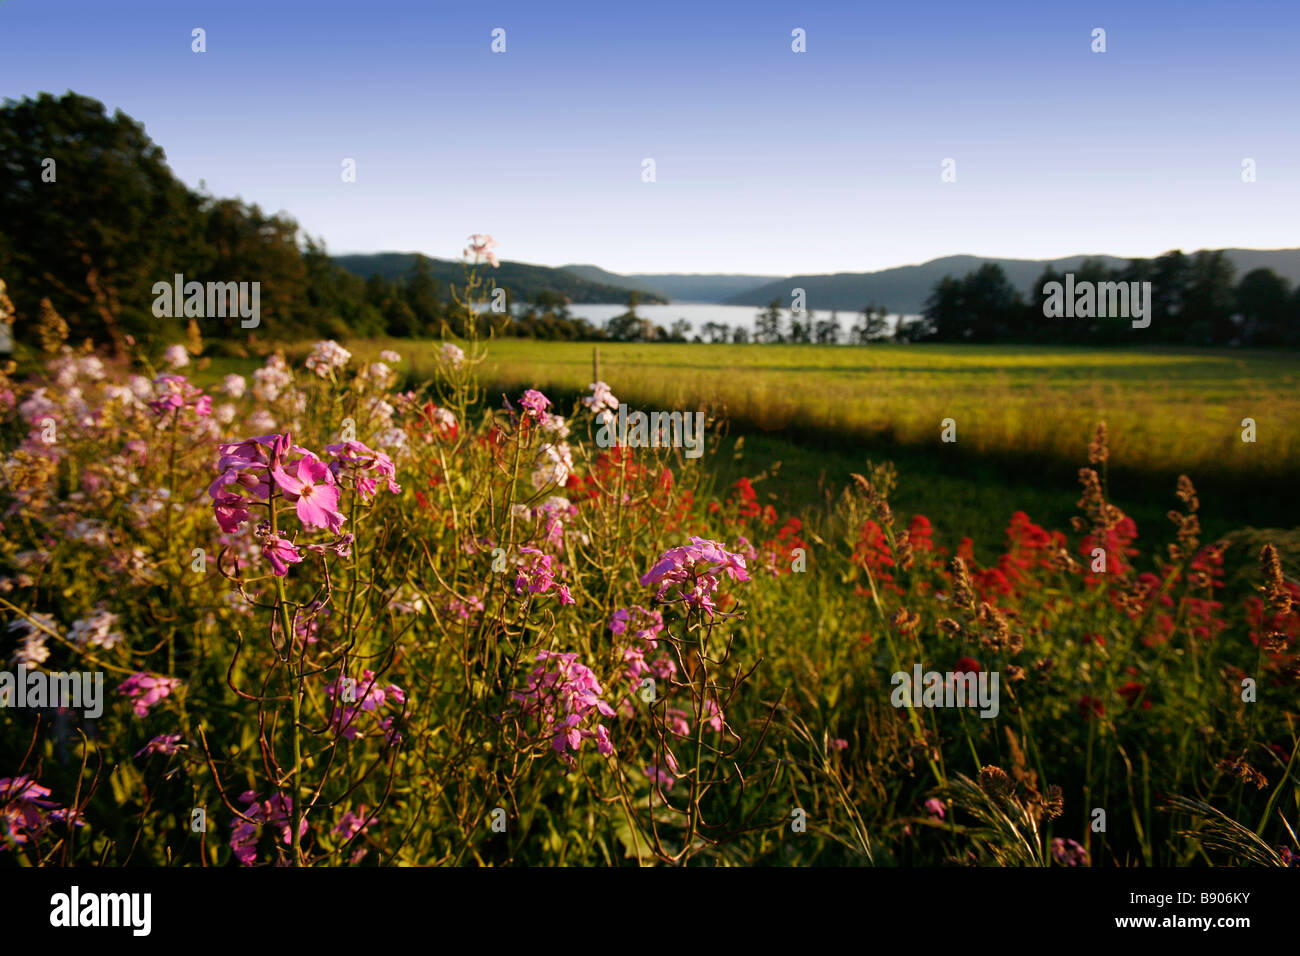 Flowers in bloom next to a field and ocean view. - Stock Image